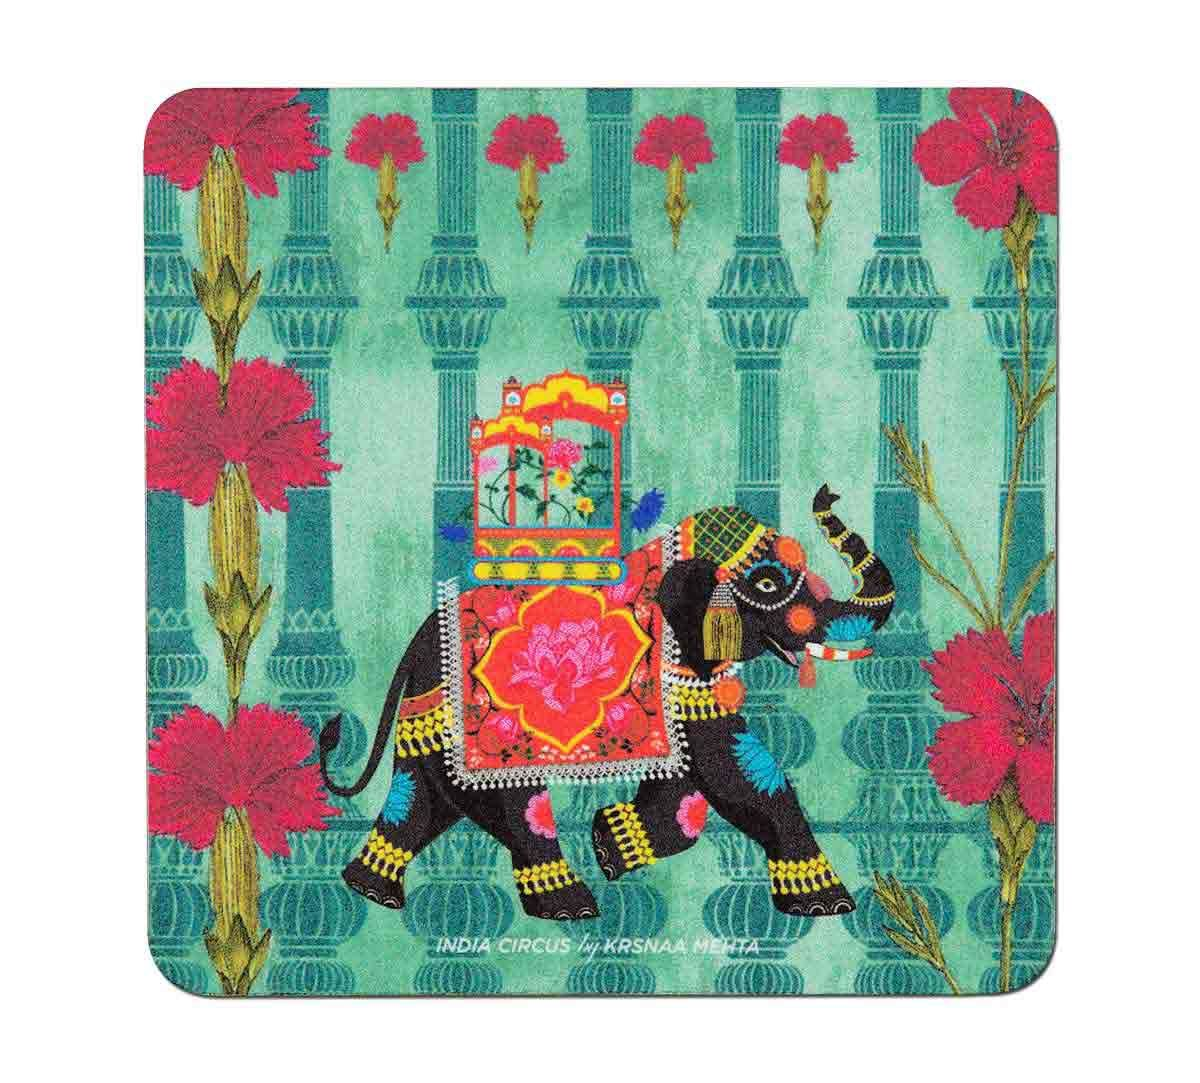 India Circus Tusker Chariot Table Coaster Set of 6